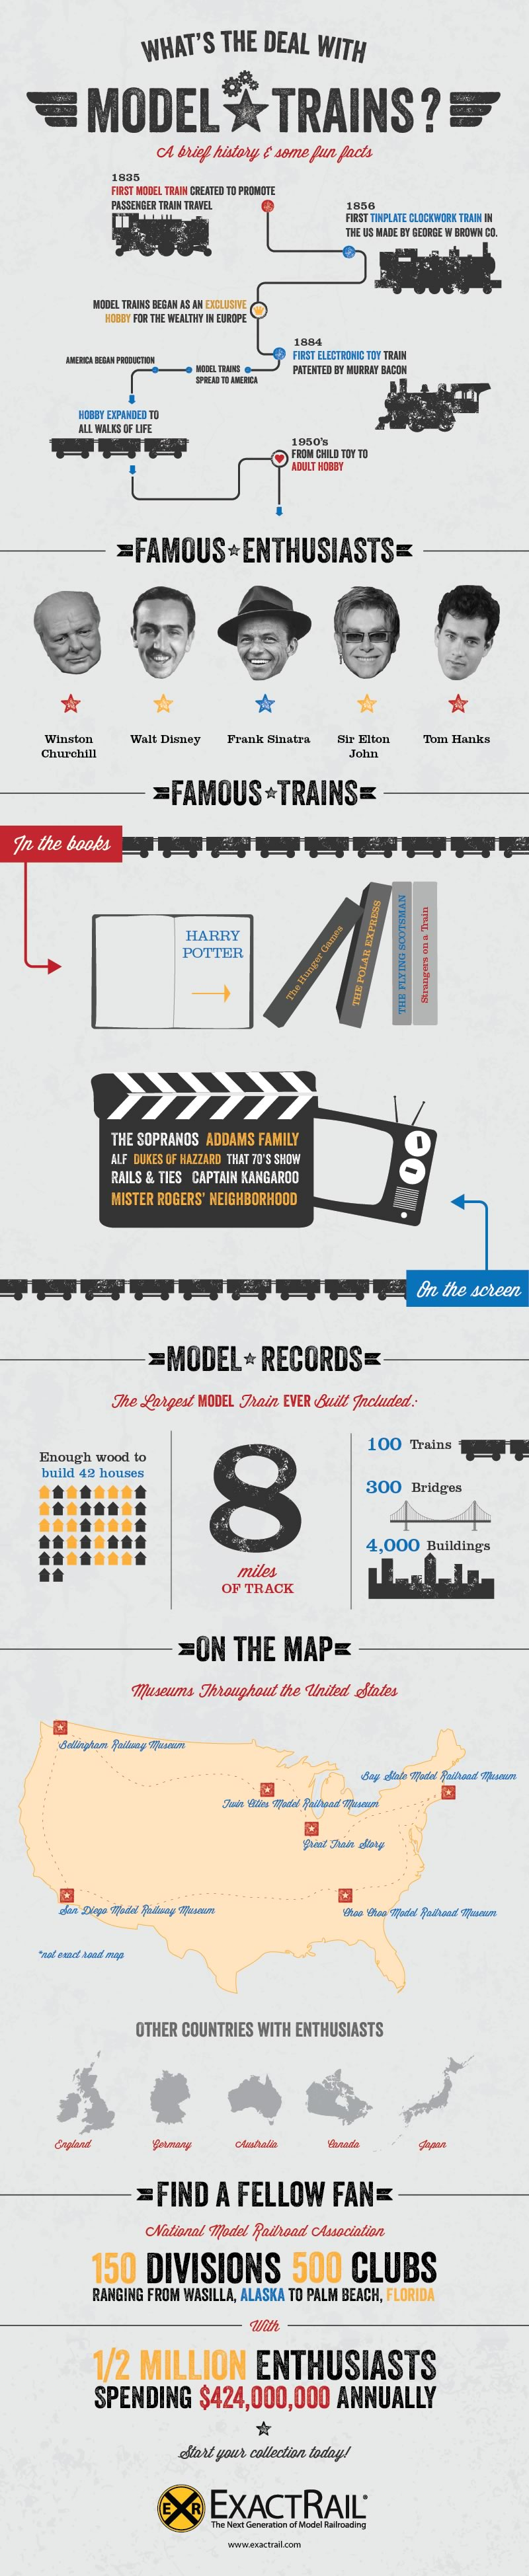 Model Trains History And Facts - iNFOGRAPHiCs MANiA